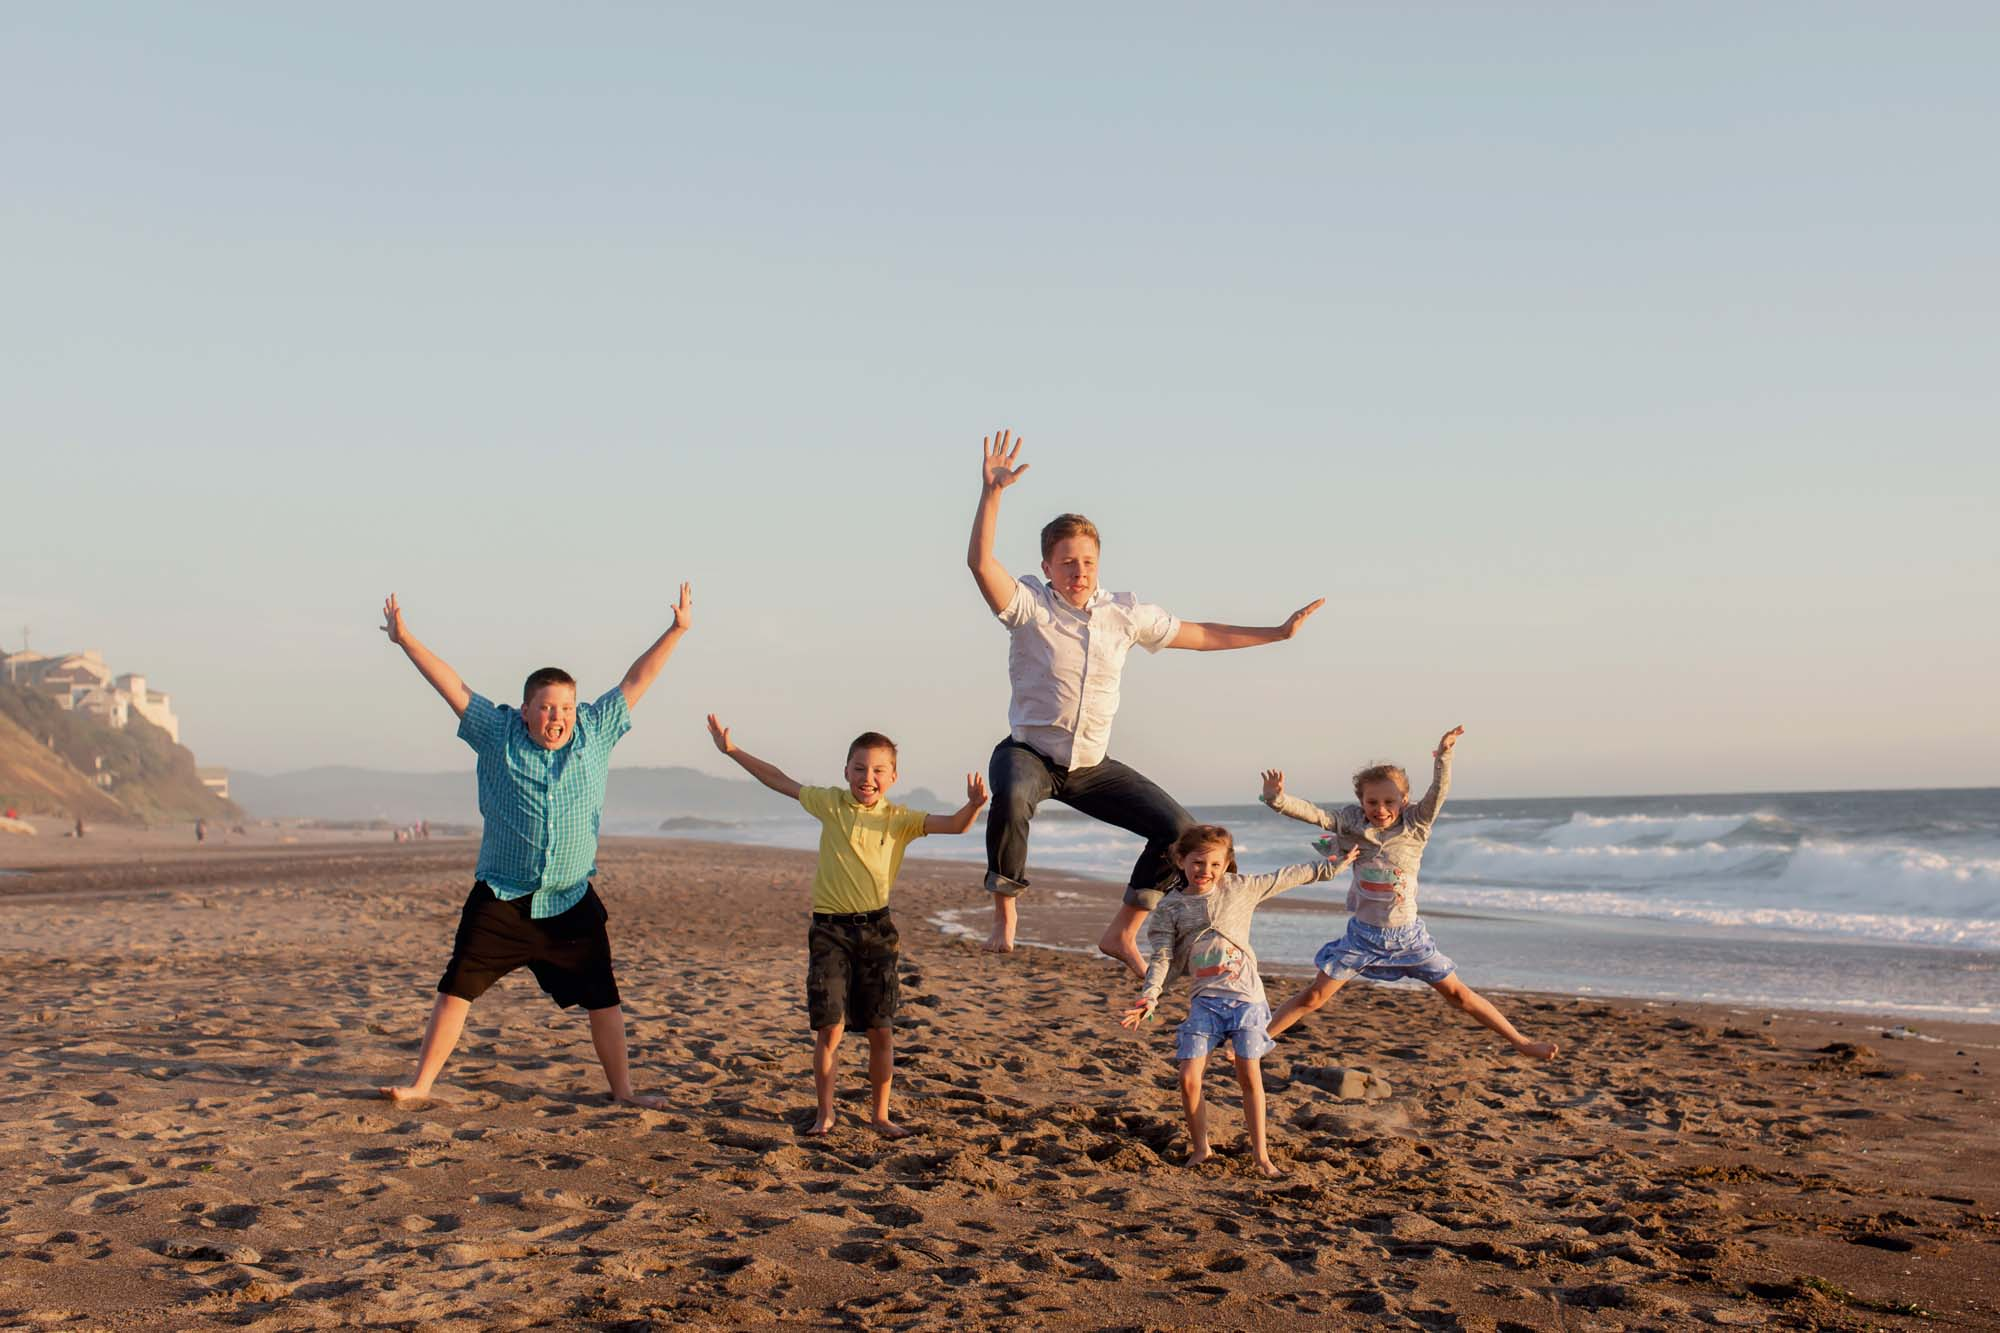 kids jumping at the beach in the oregon coast